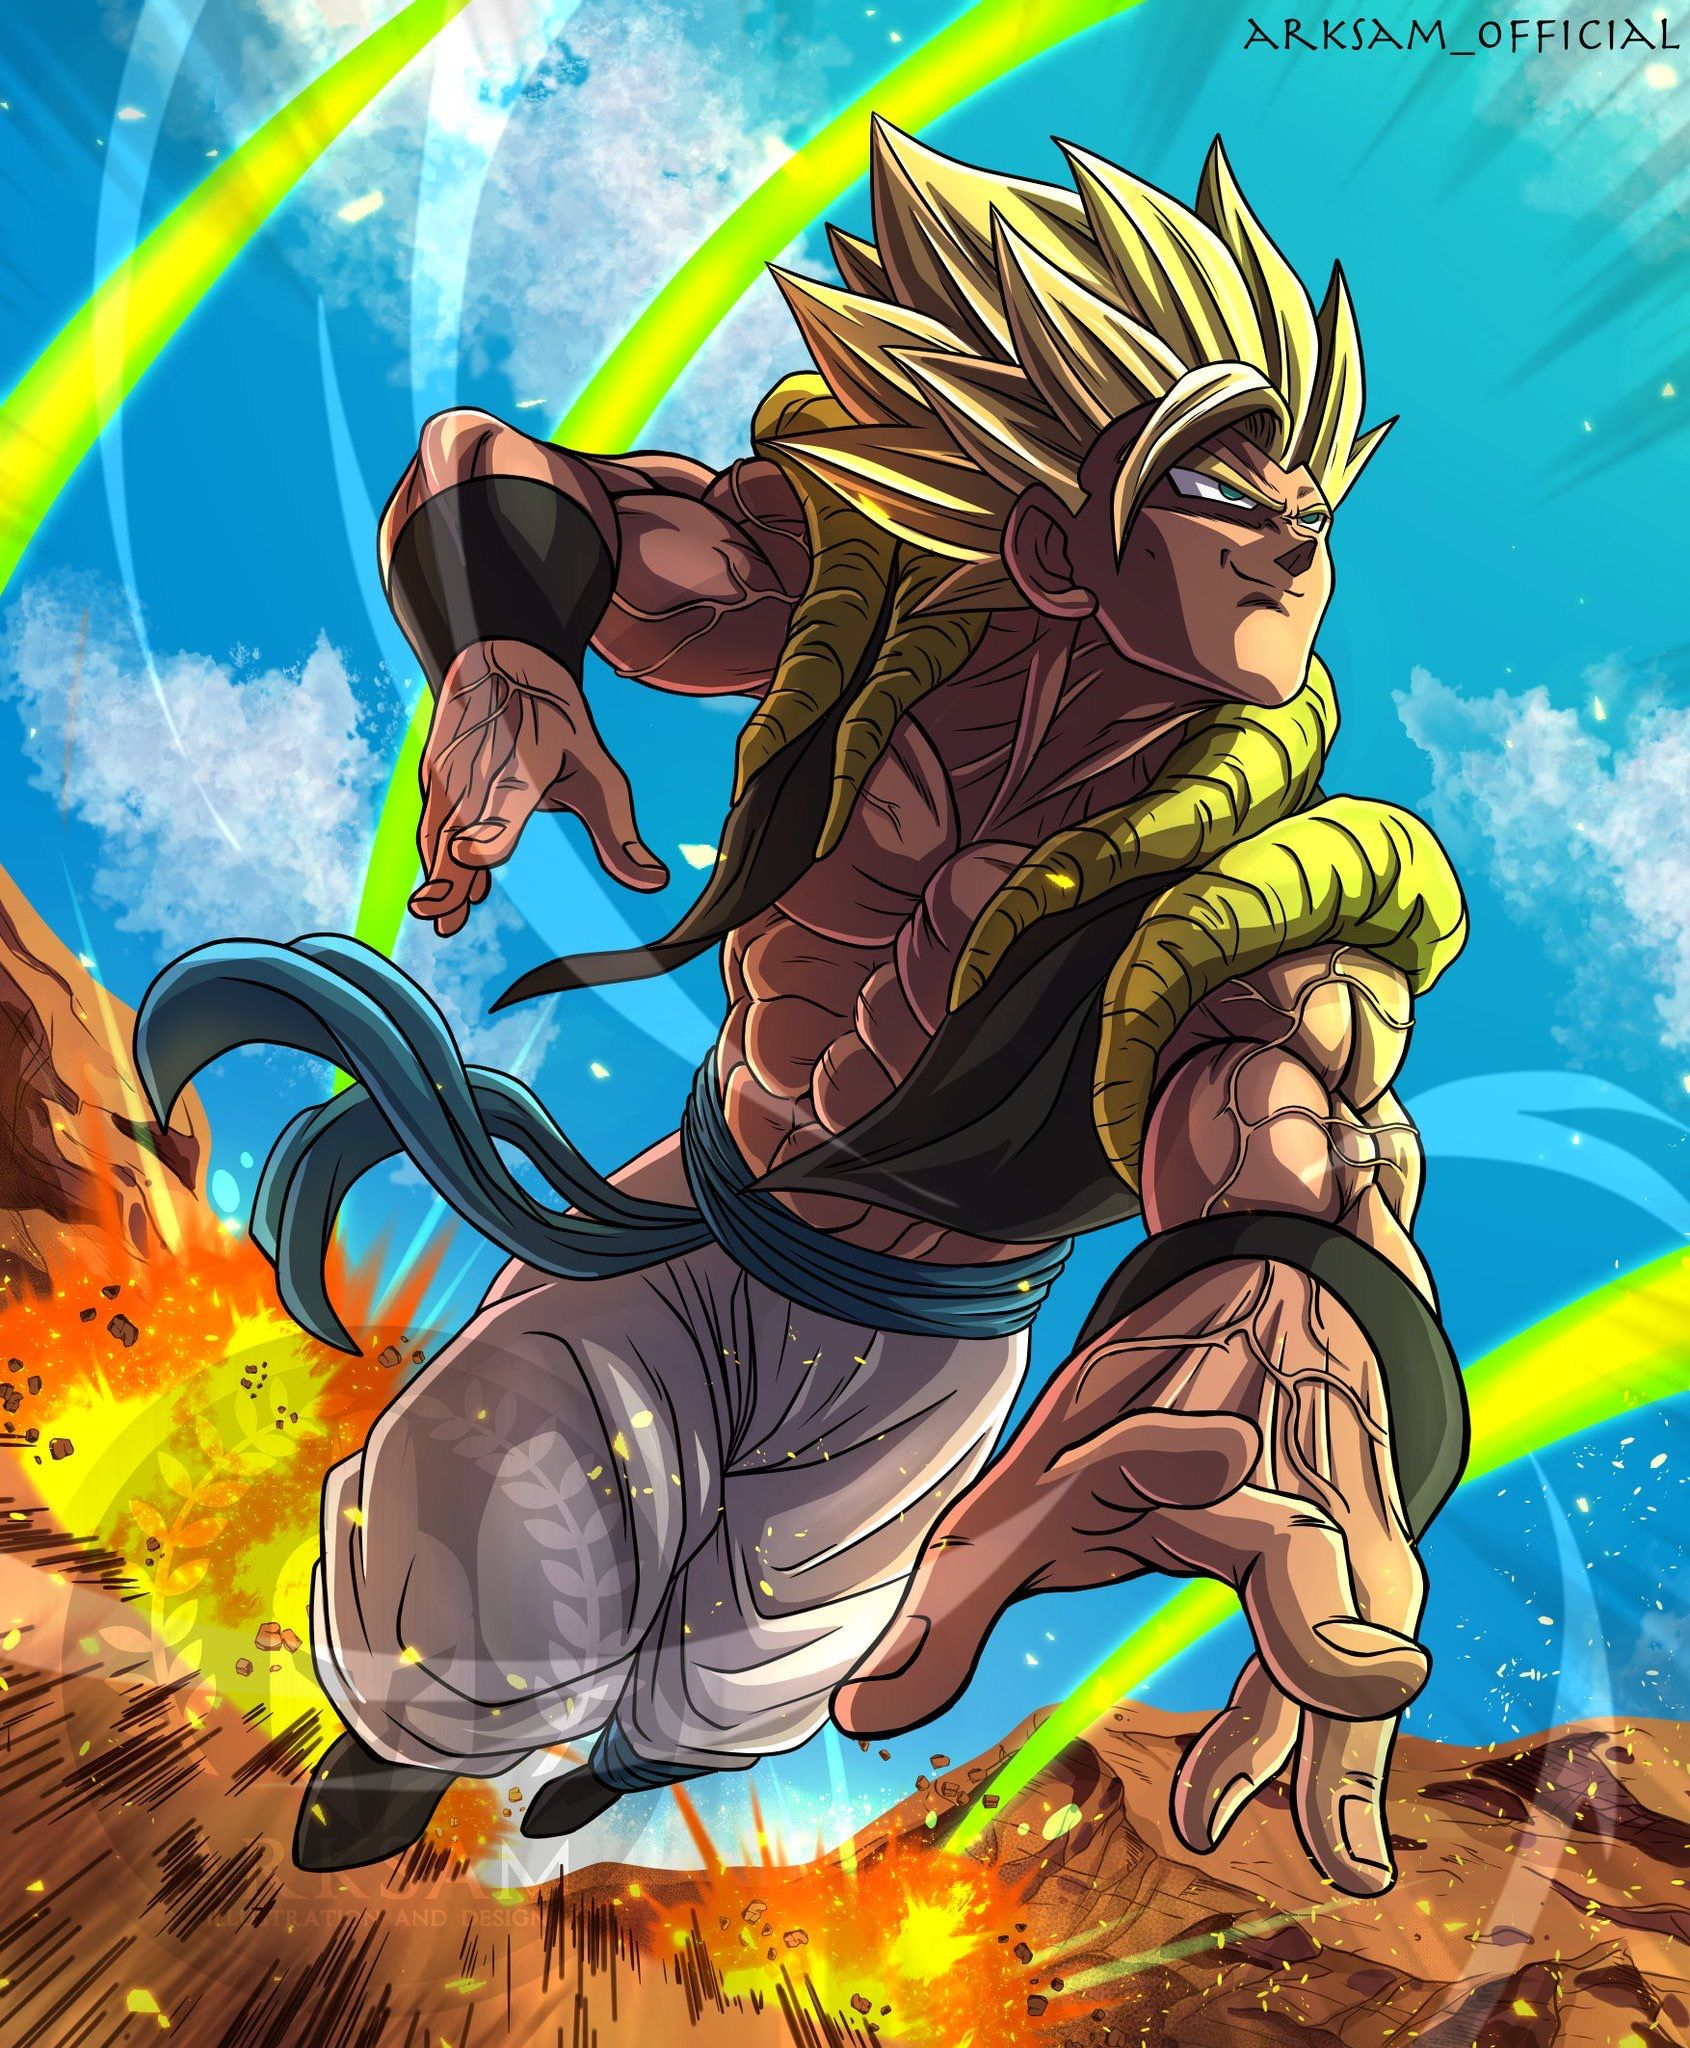 Pin by Zenny on Dragon Ball Z (With images) Anime dragon